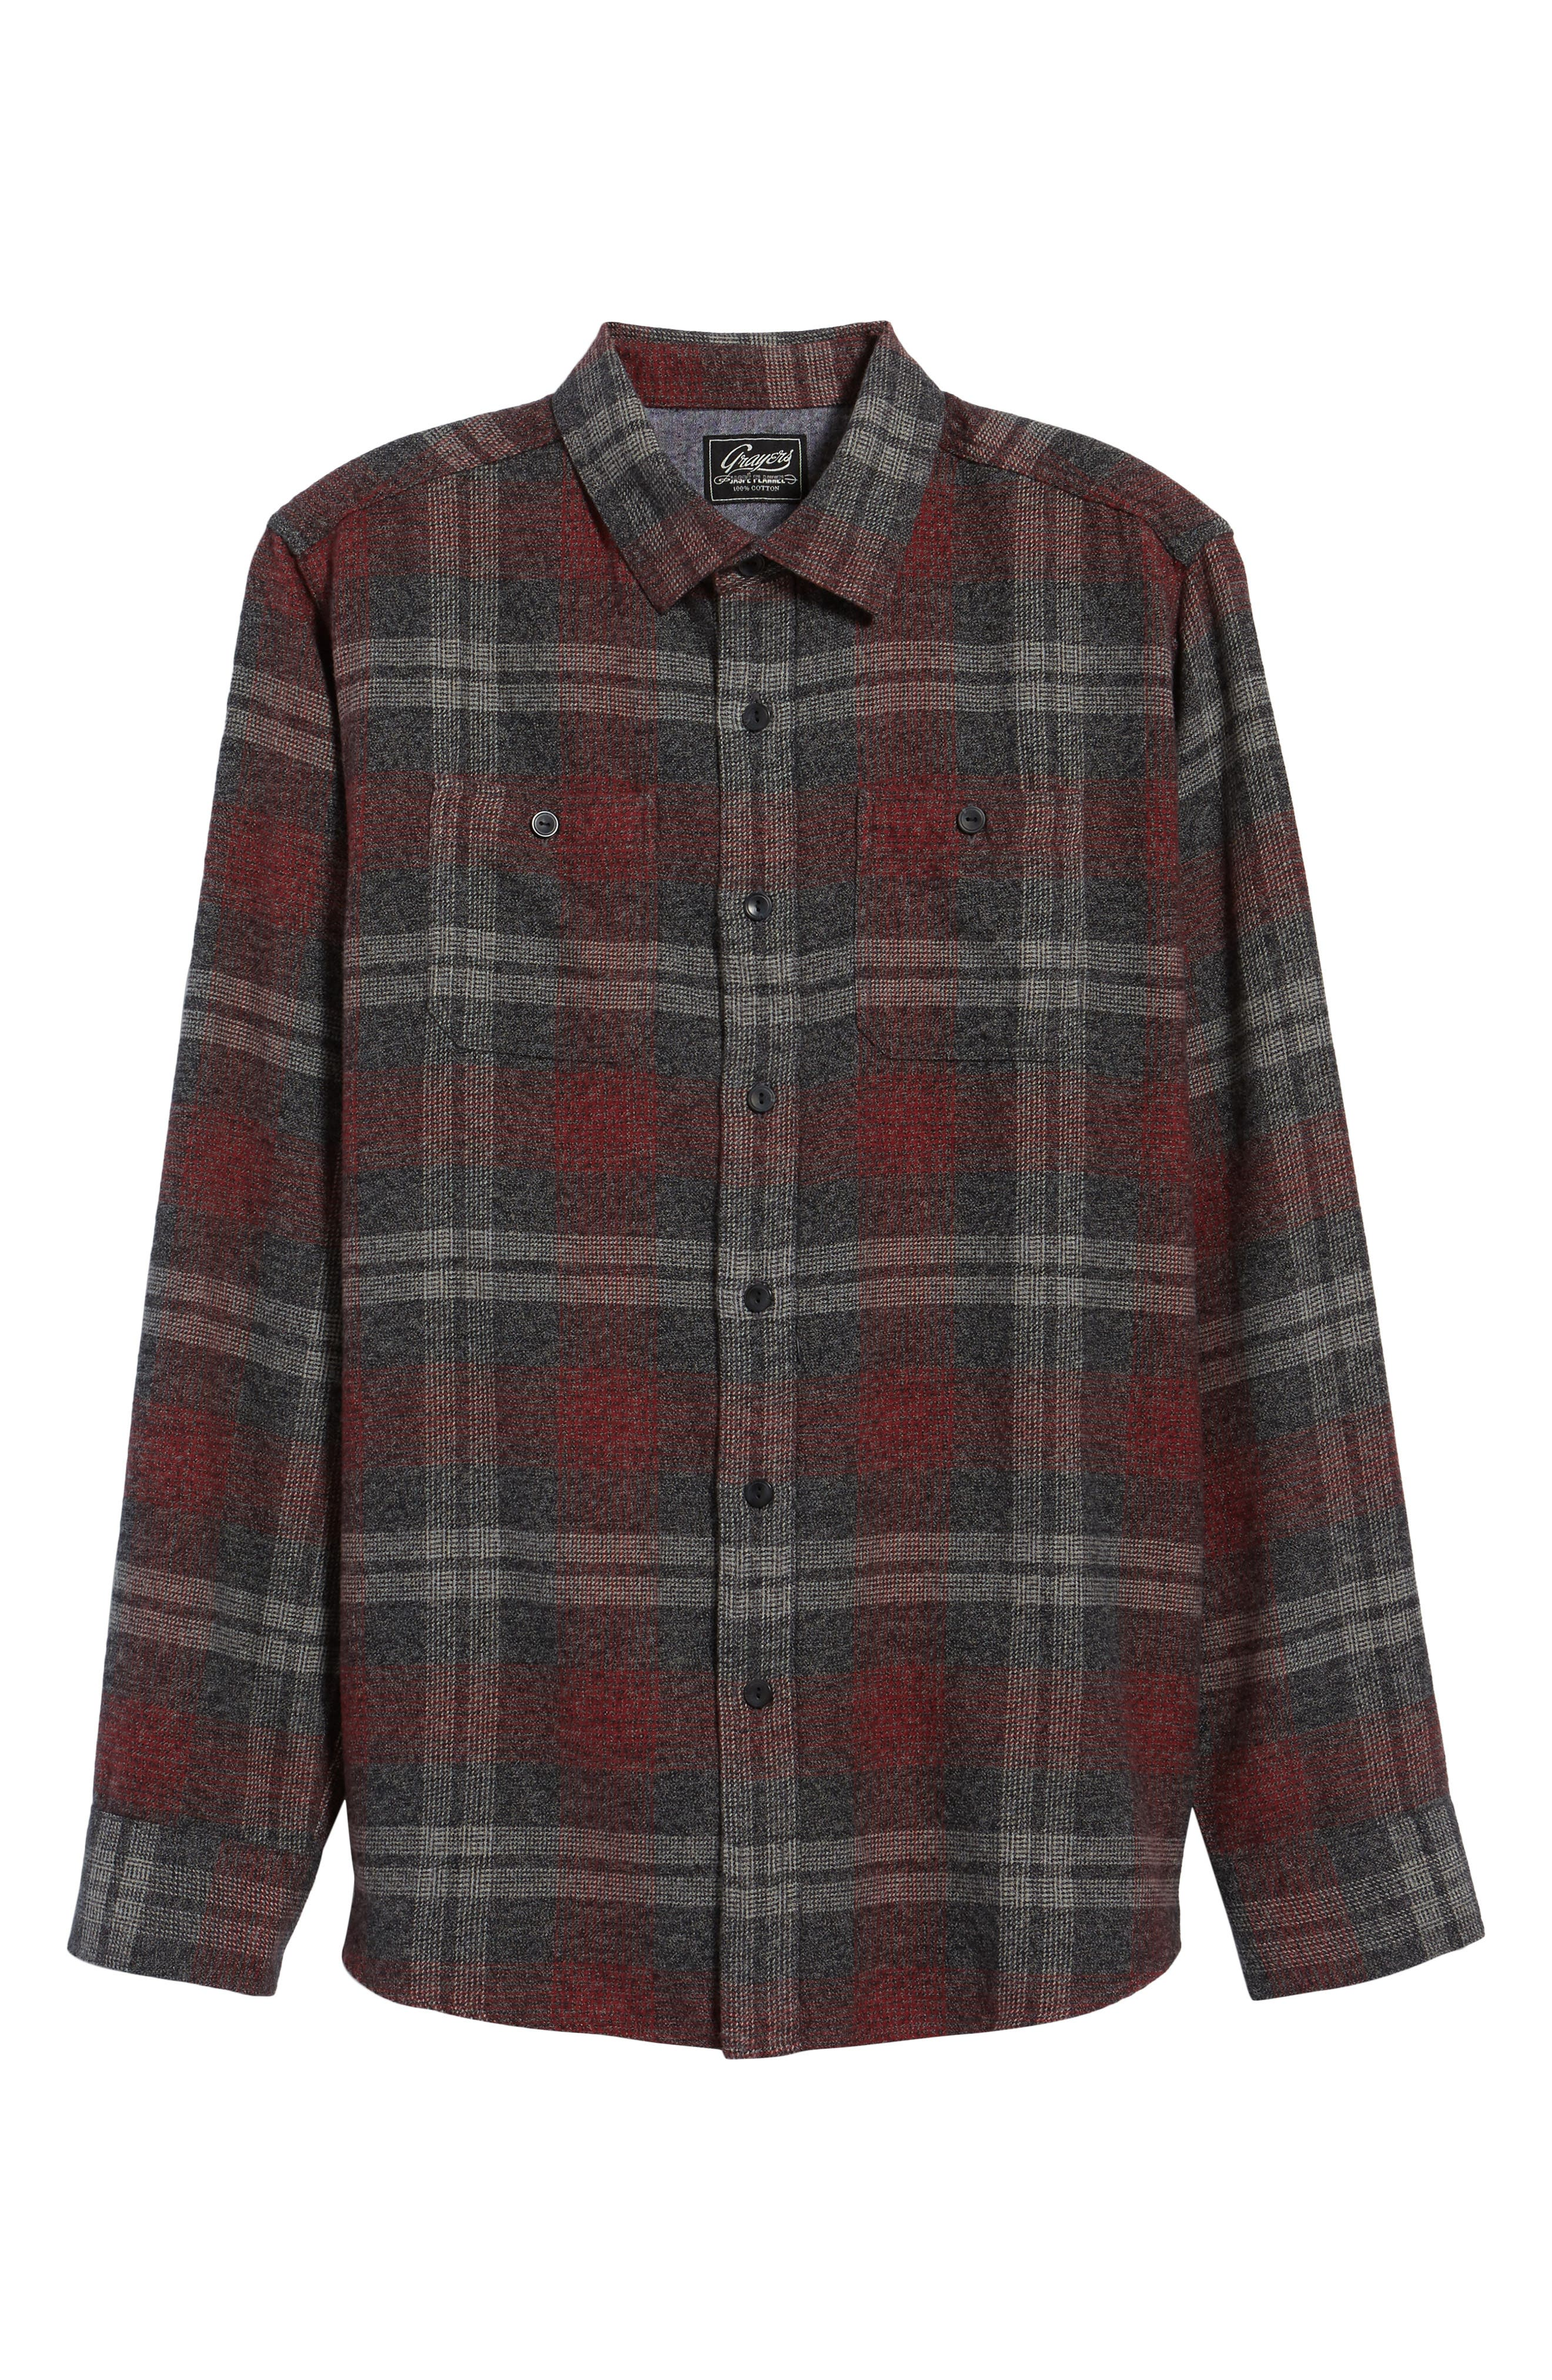 Marston Lux Plaid Flannel Shirt,                             Alternate thumbnail 6, color,                             Charcoal Burgundy